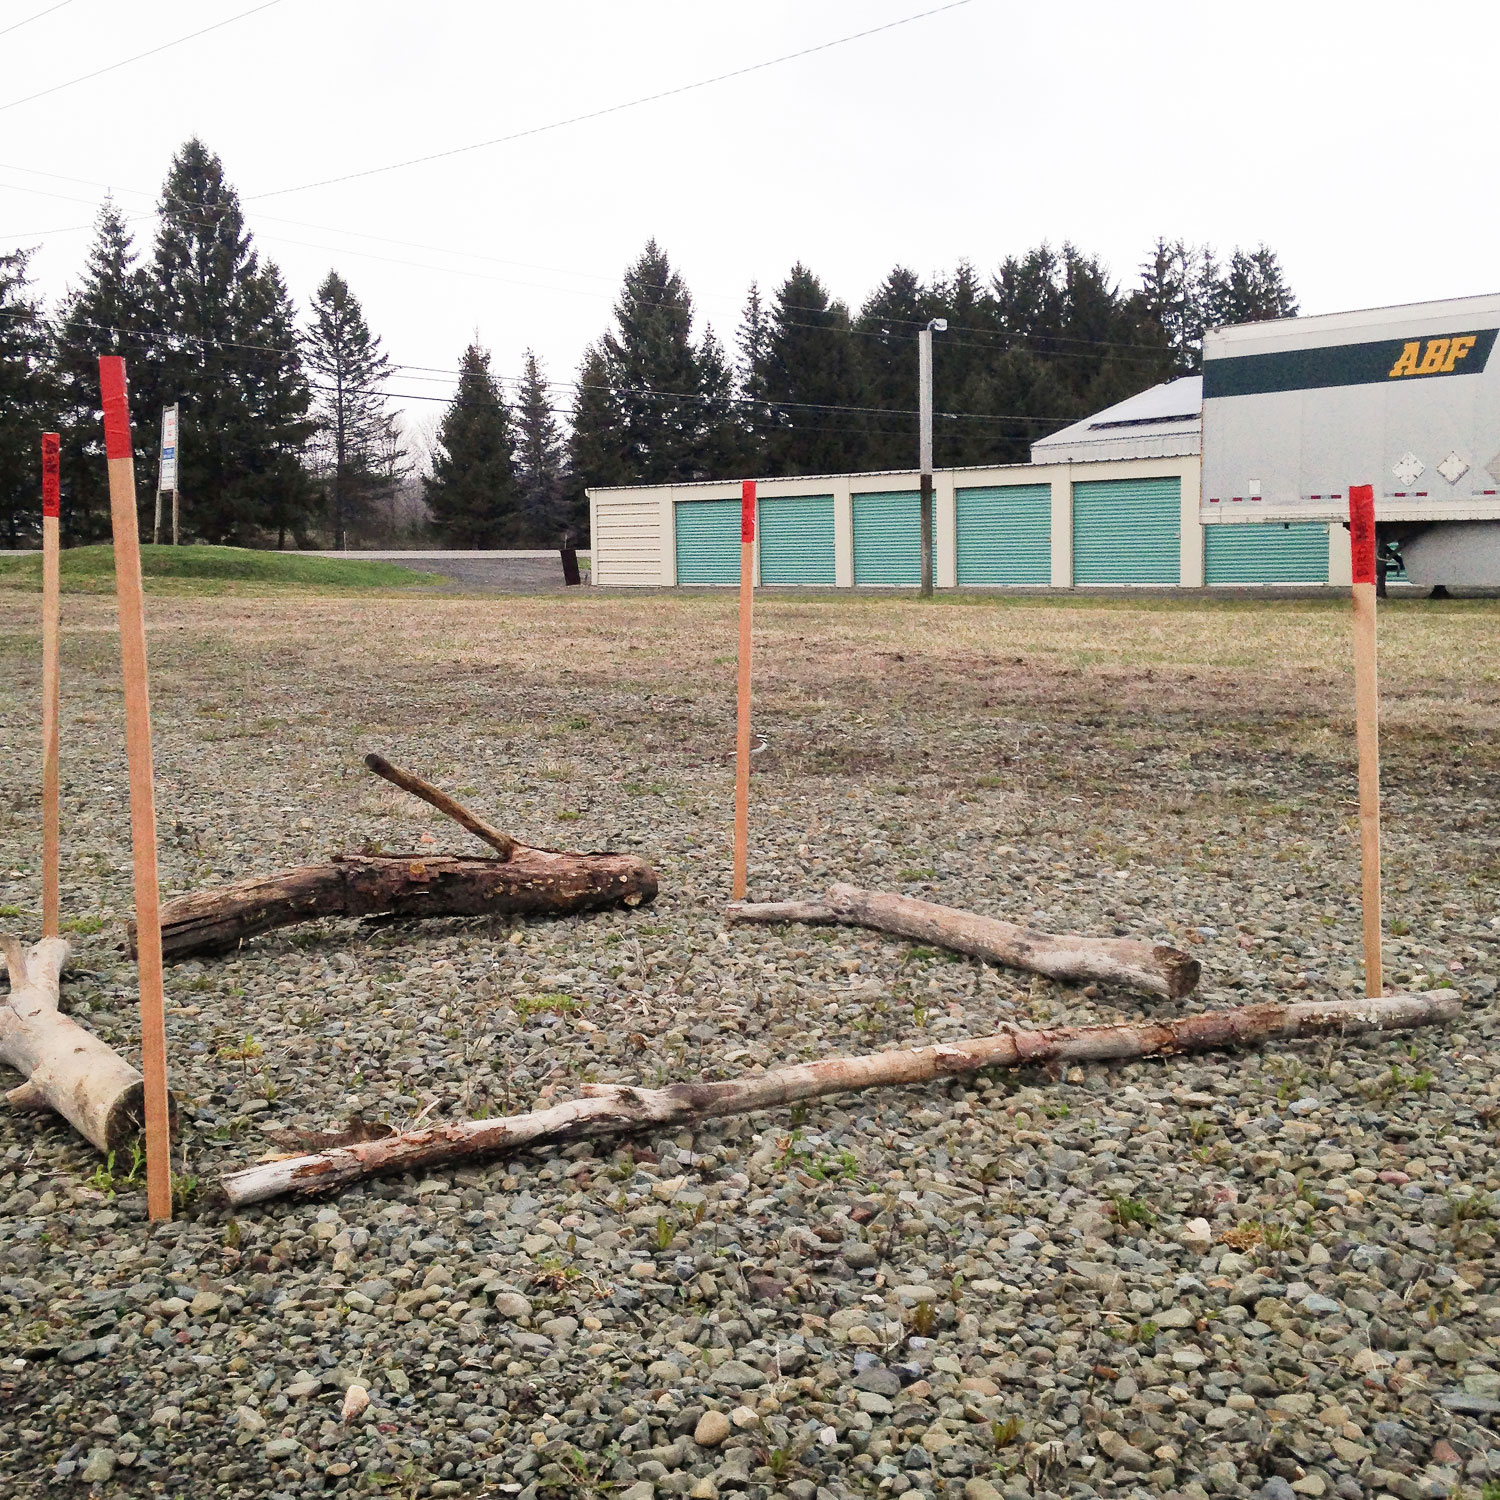 To ensure the nest was visible to drivers, Groo staked it with tall poles capped by red markers. She also placed logs around the perimeter, figuring that if someone came too close they'd bump into those first. Melissa Groo